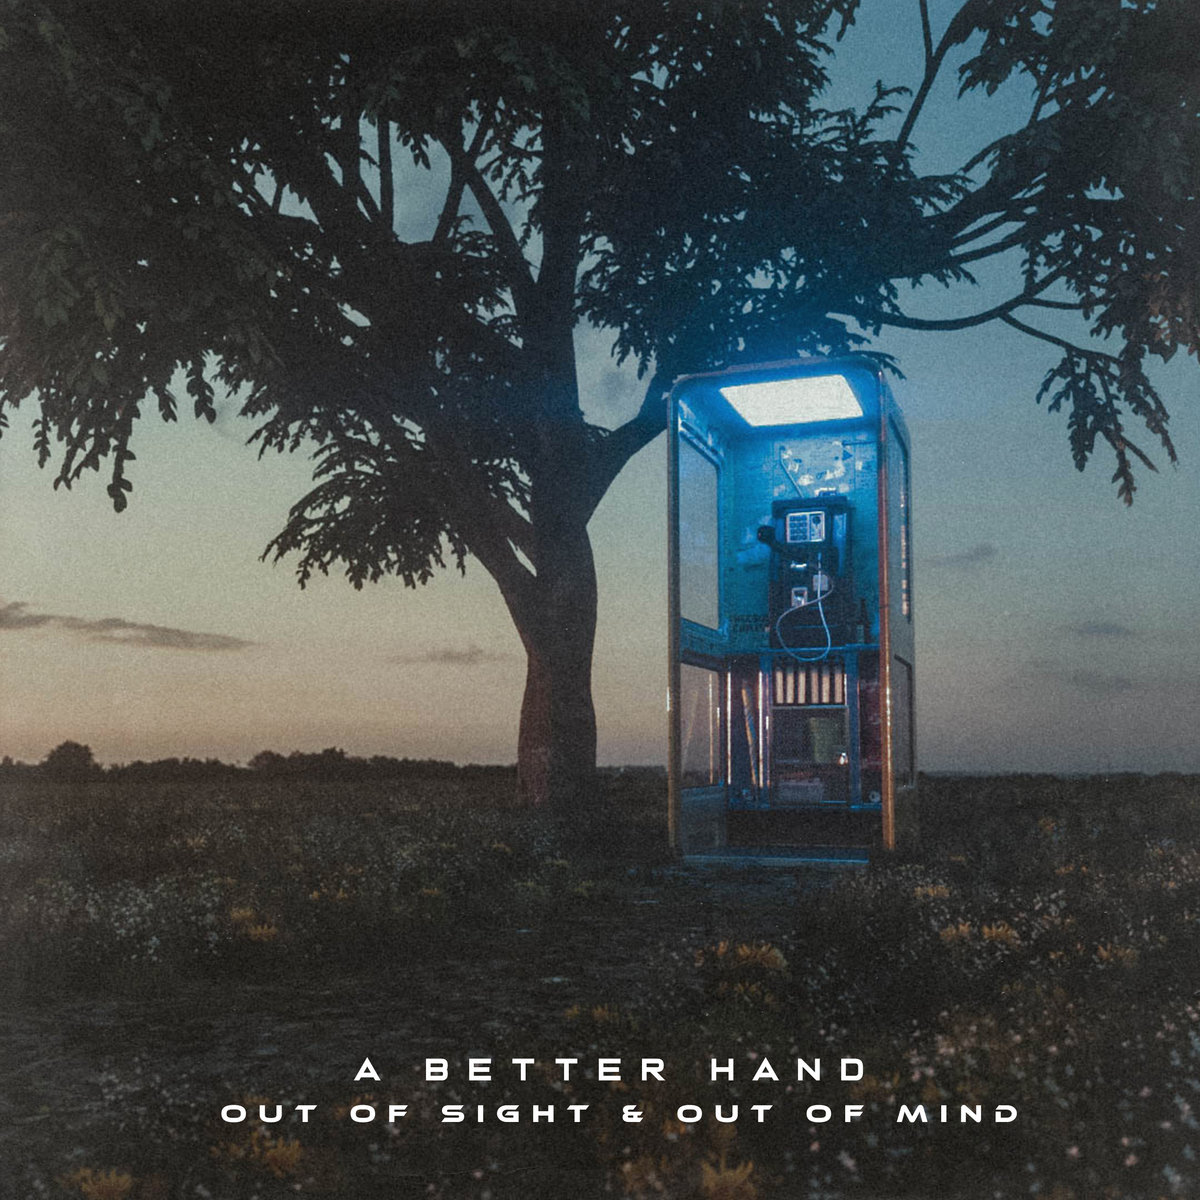 A Better Hand - Out of Sight & out of Mind [EP] (2019)